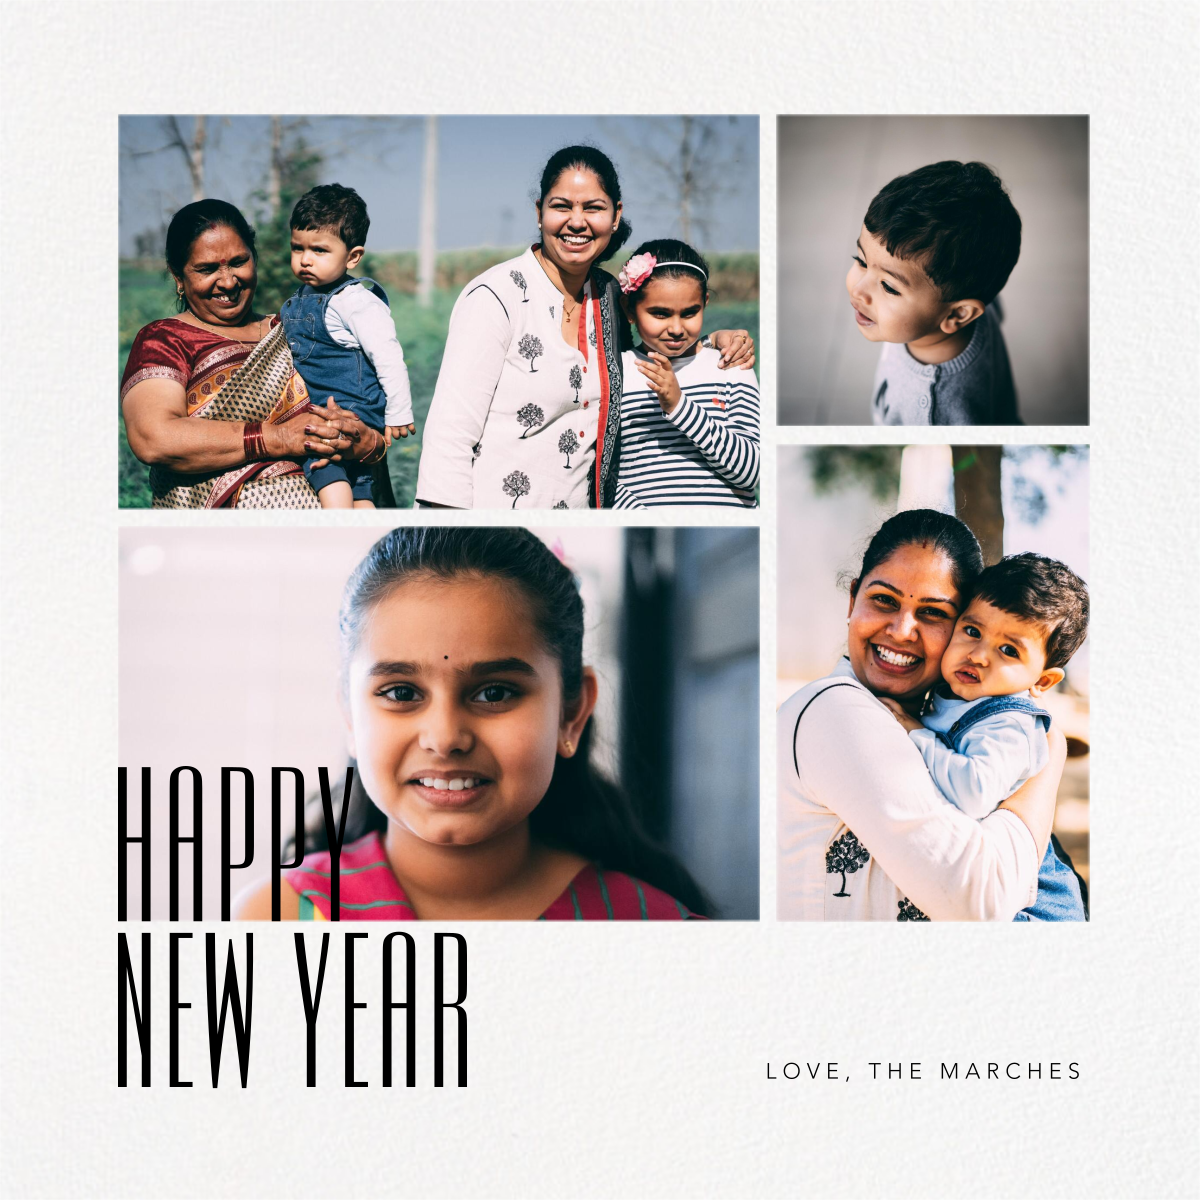 New Year Gallery (Square) - Paperless Post